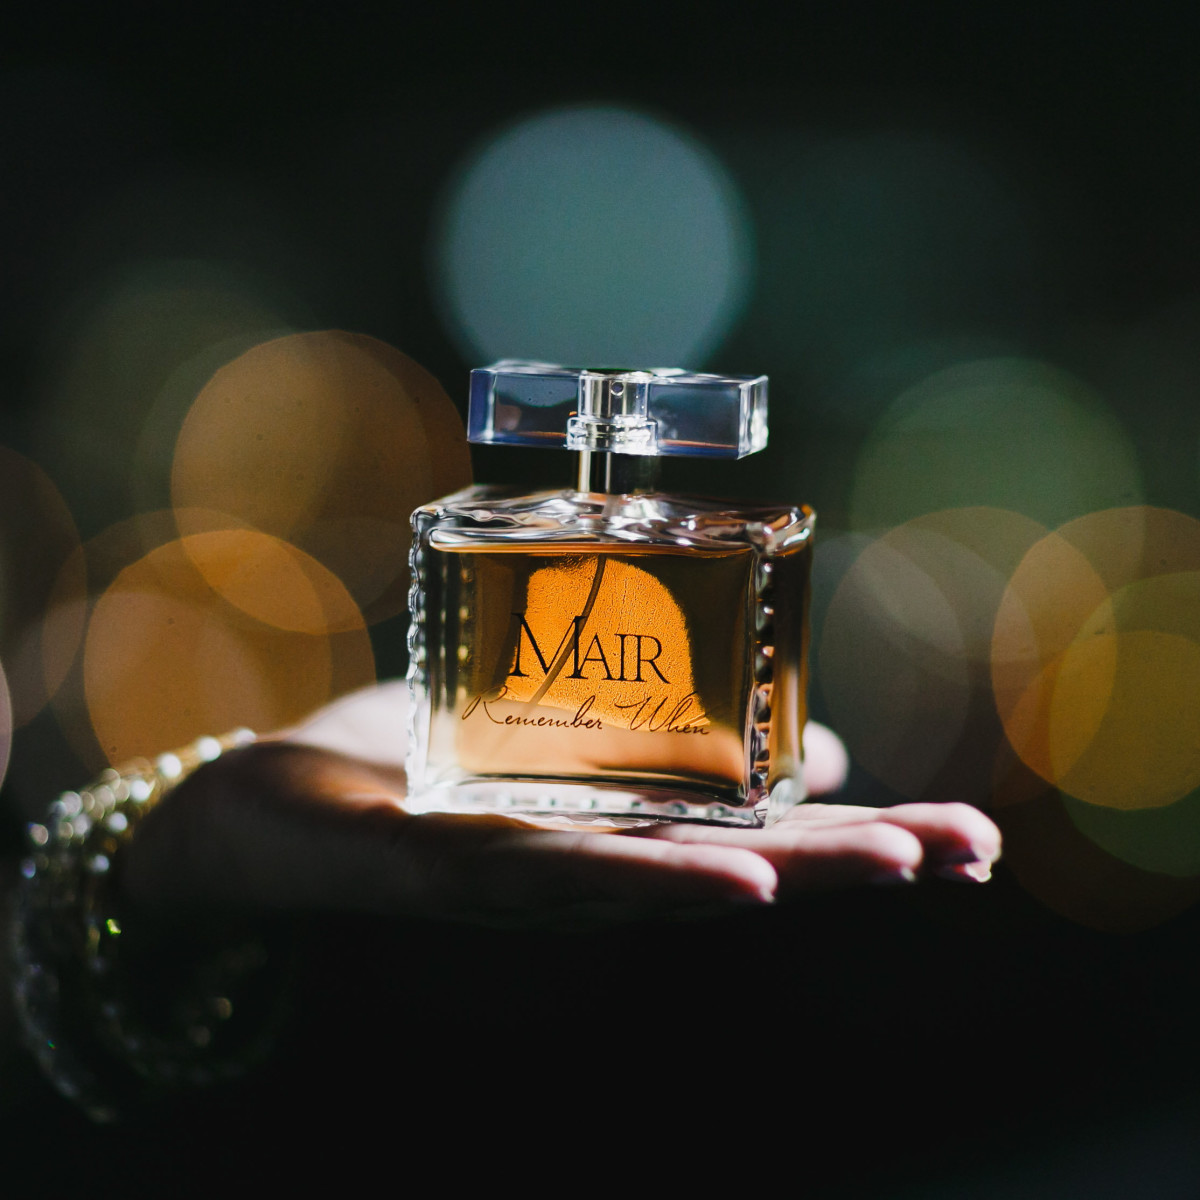 Mair Fragrance bottle photo